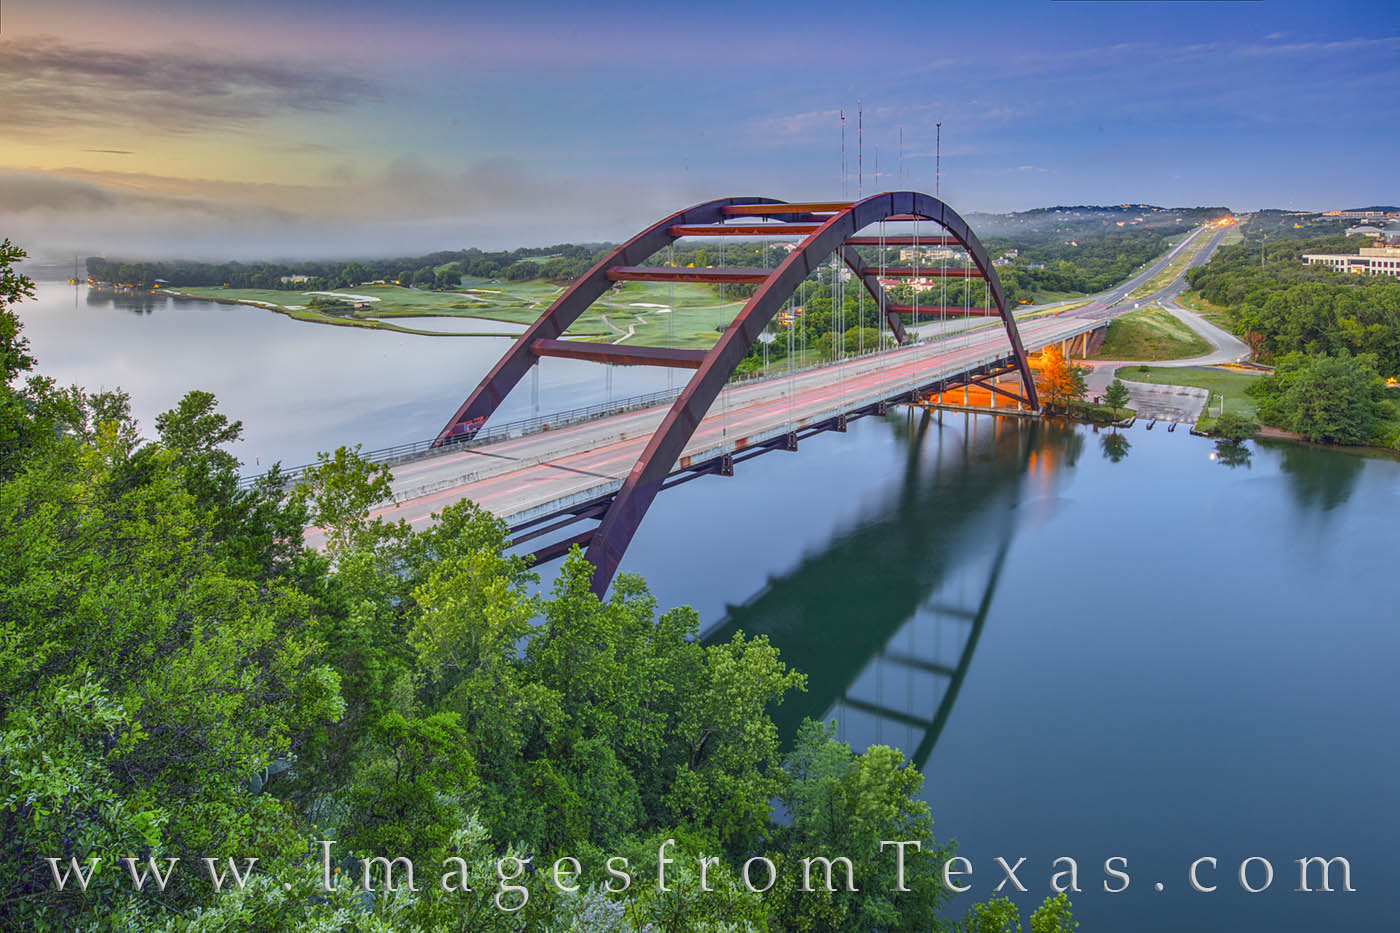 High above the cliffs overlooking the 360 Bridge outside of Austin, Texas, the views on this cool summer morning were amazing...